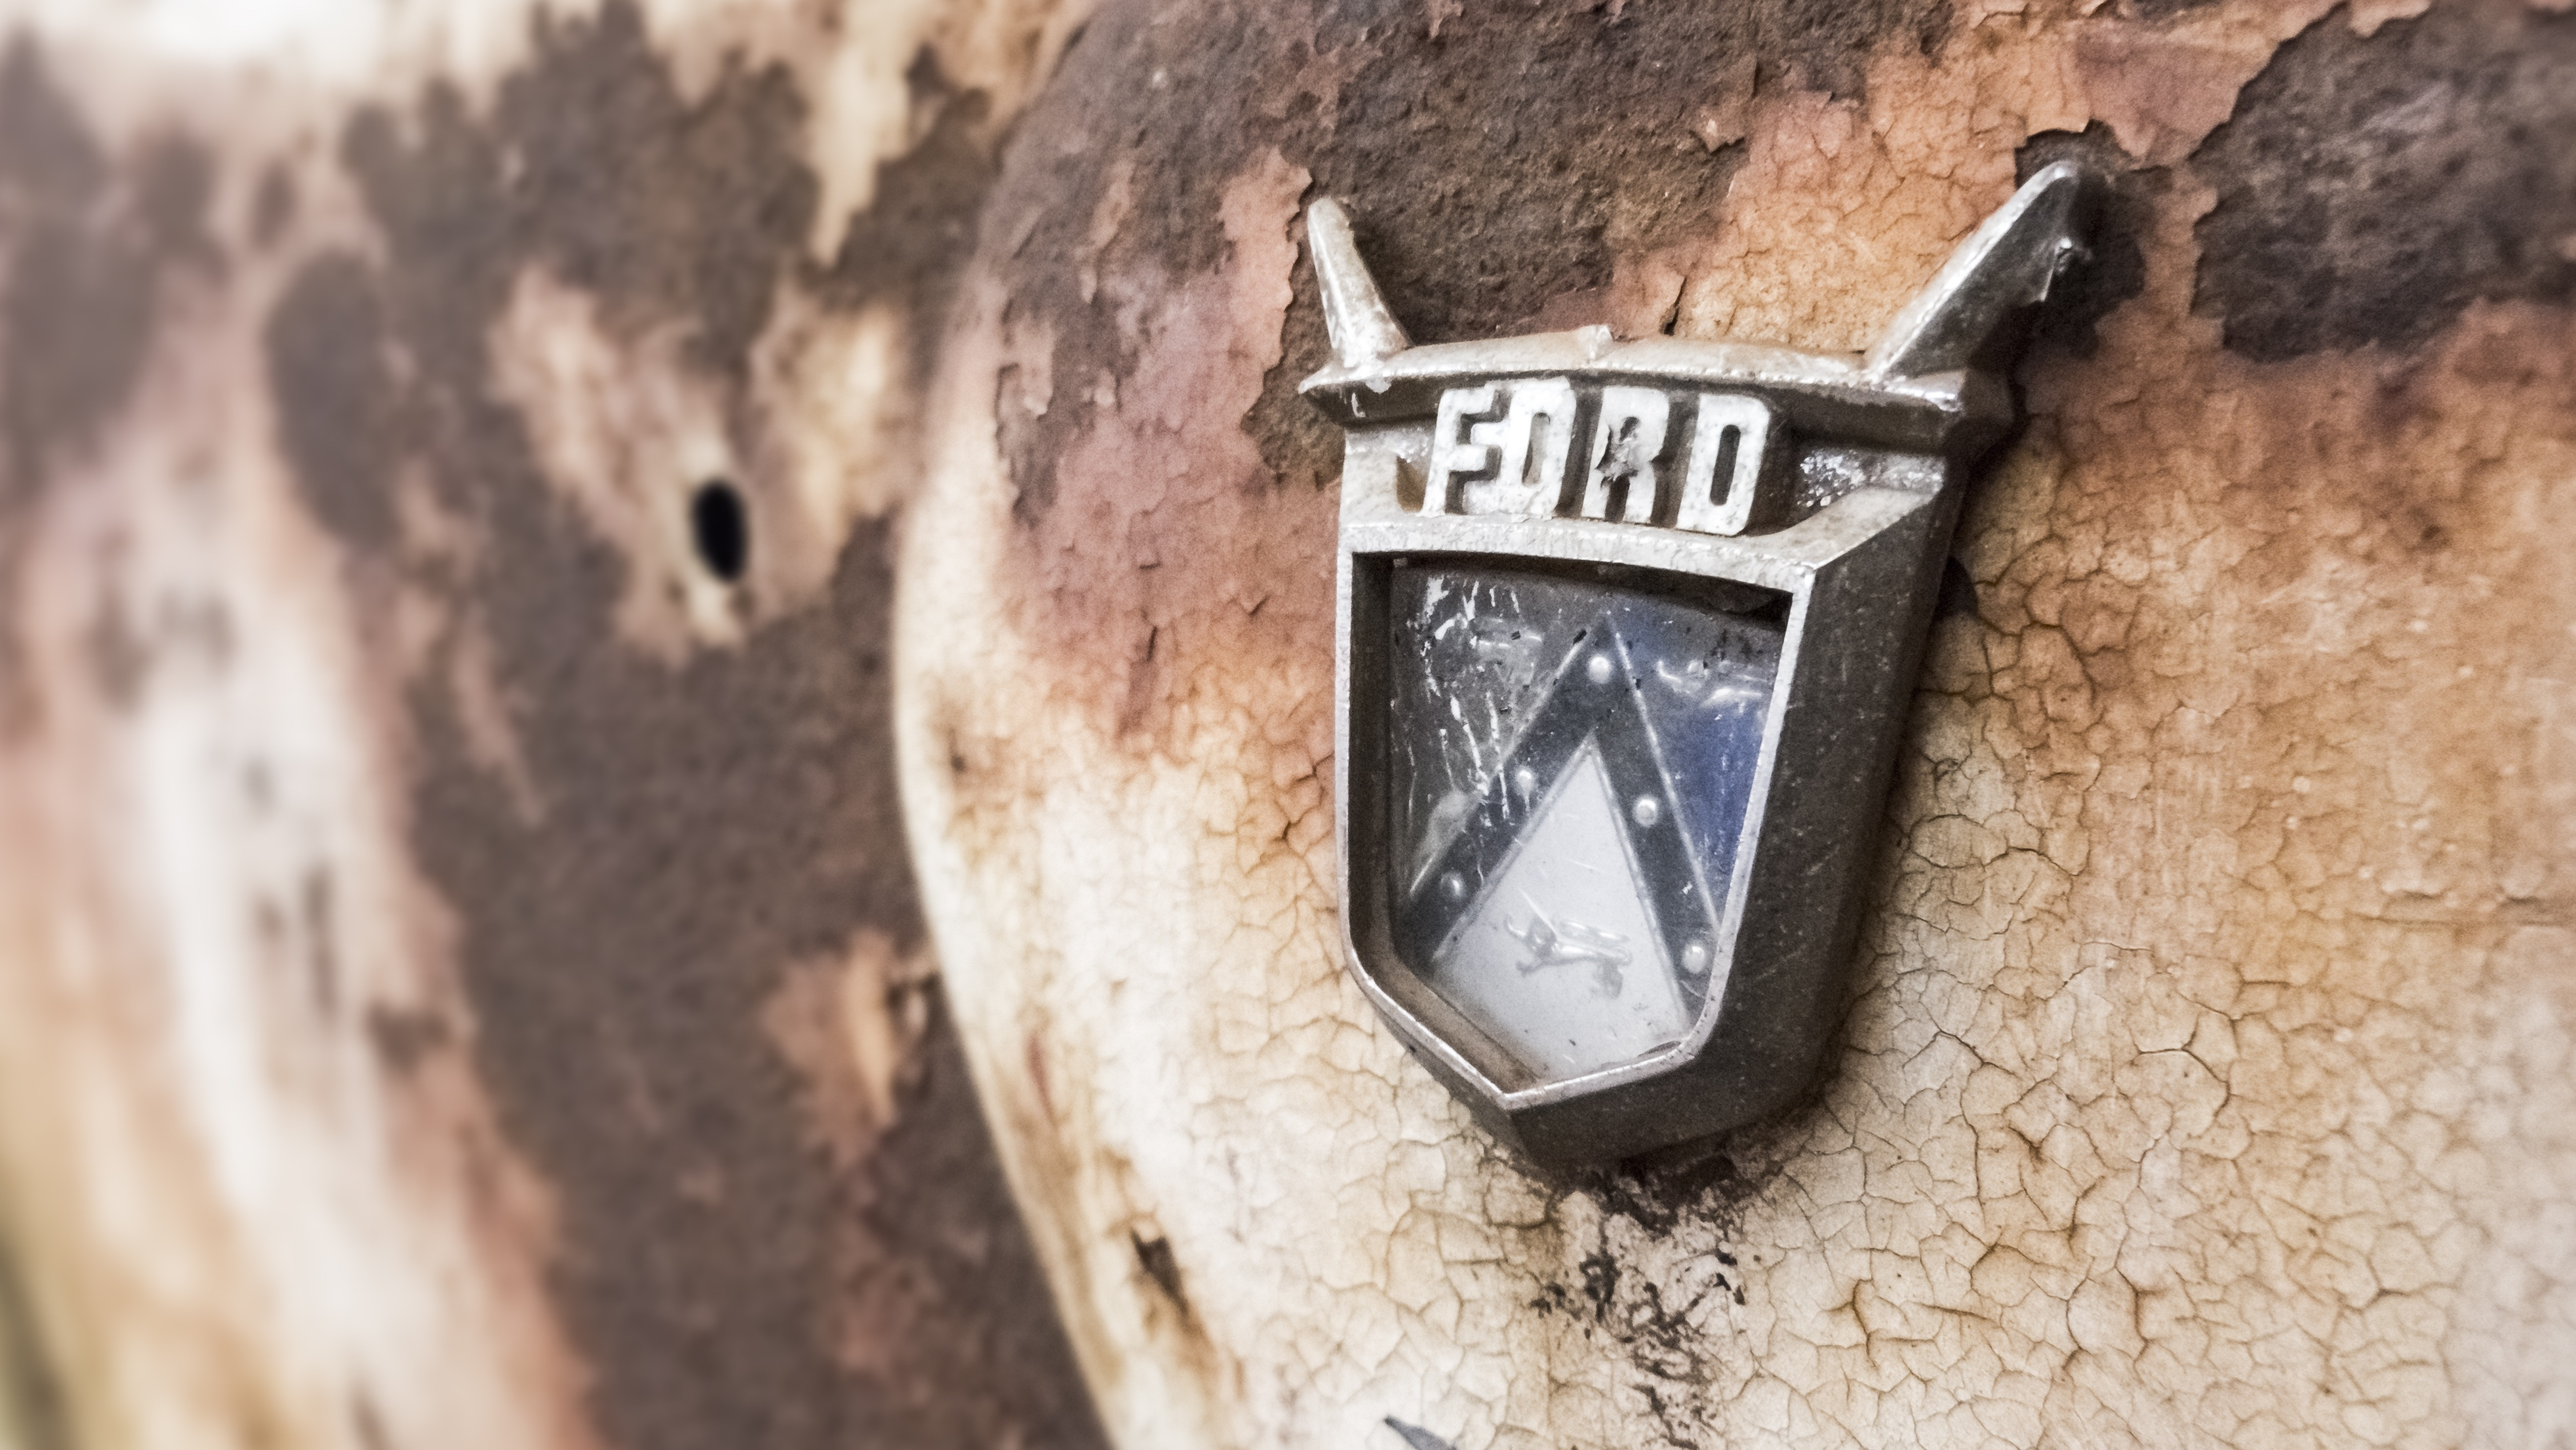 Old Ford Car, Rust, Rusted, Texture, Old, HQ Photo